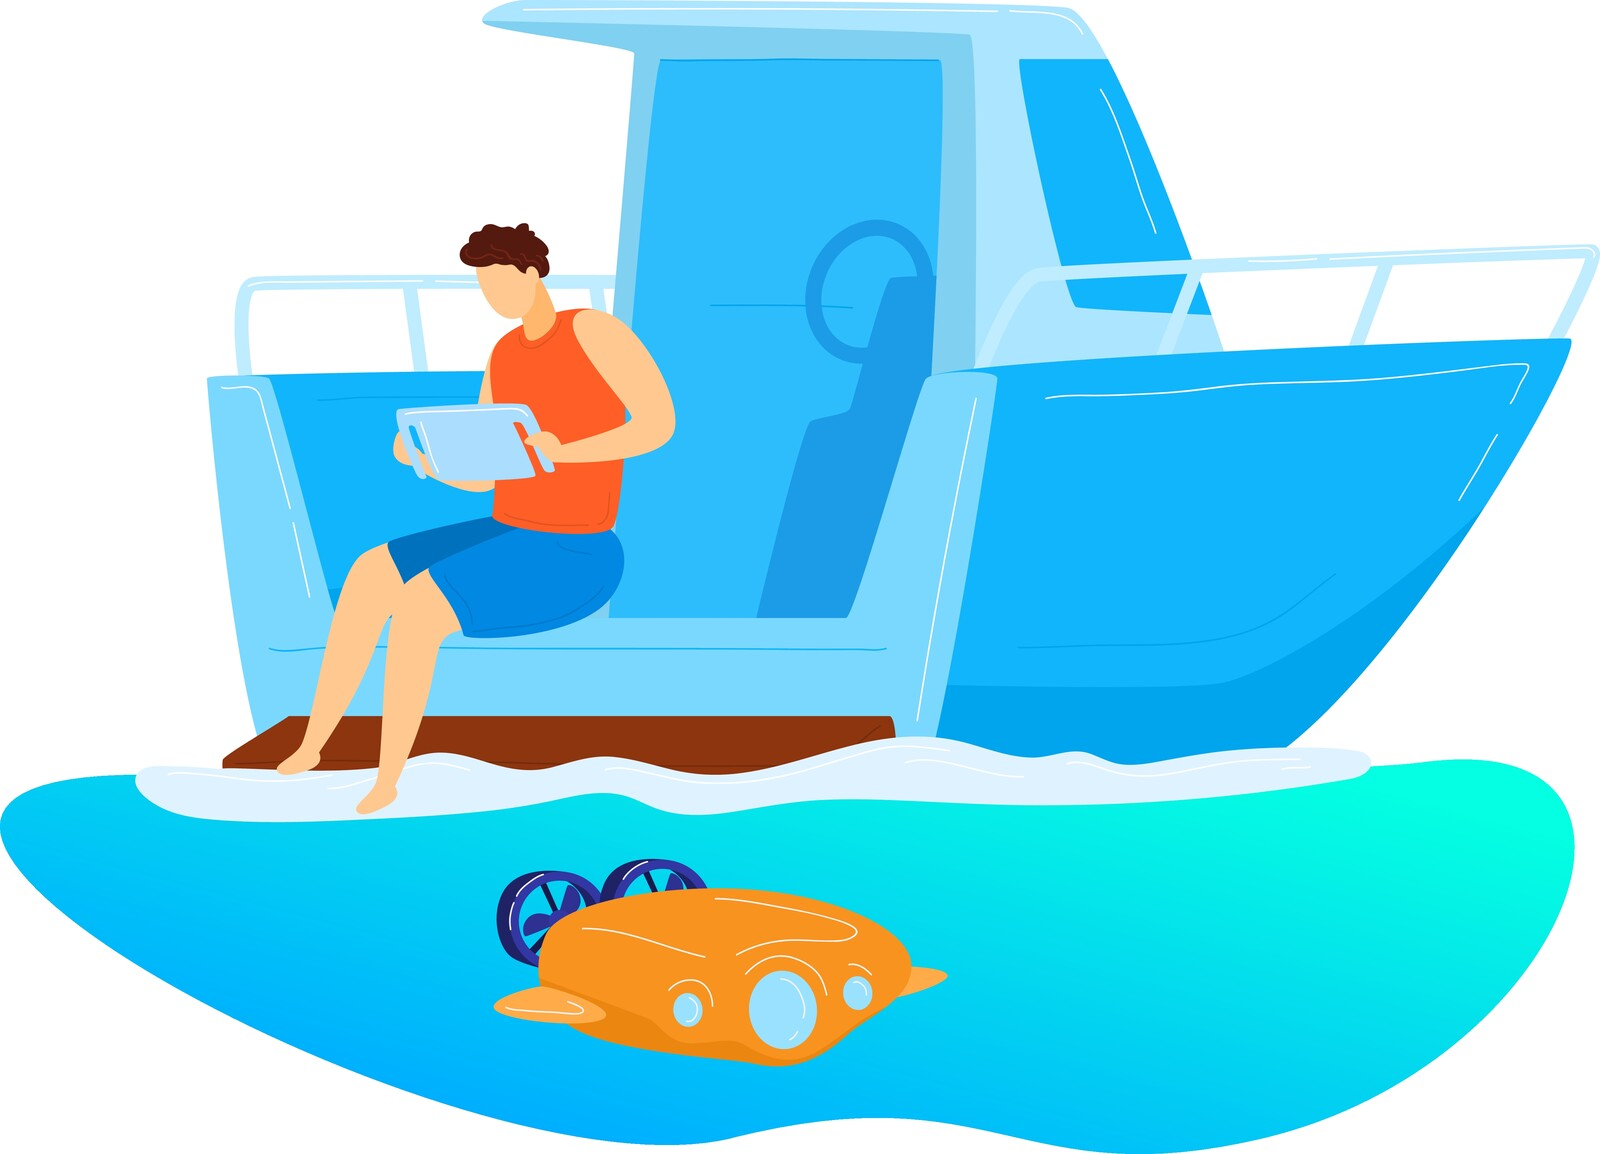 Illustration of a man sitting on a boat.